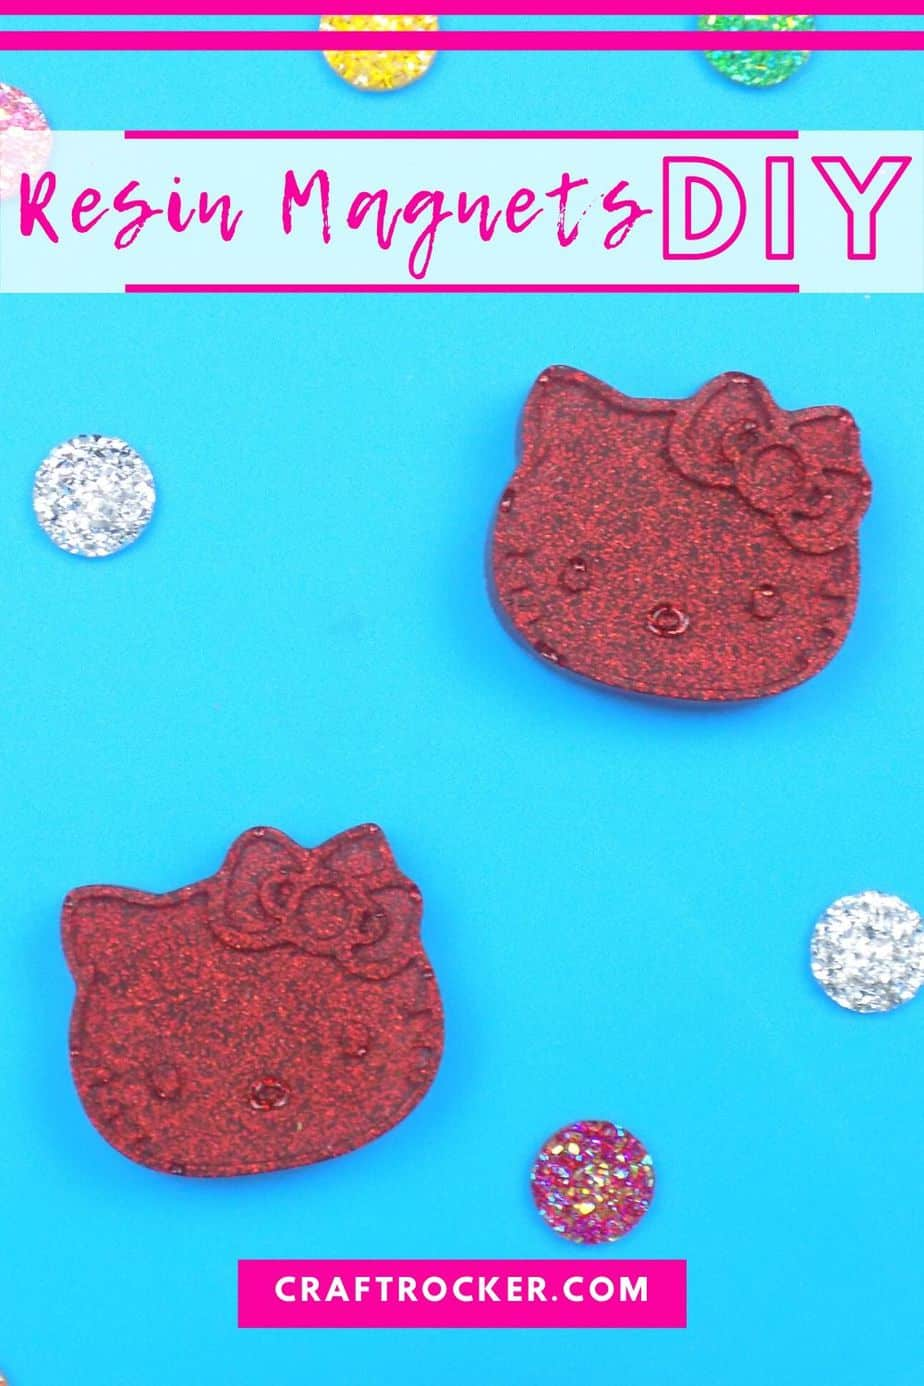 2 Hello Kitty Resin Magnets Next to Gems with text overlay - Resin Magnets DIY - Craft Rocker